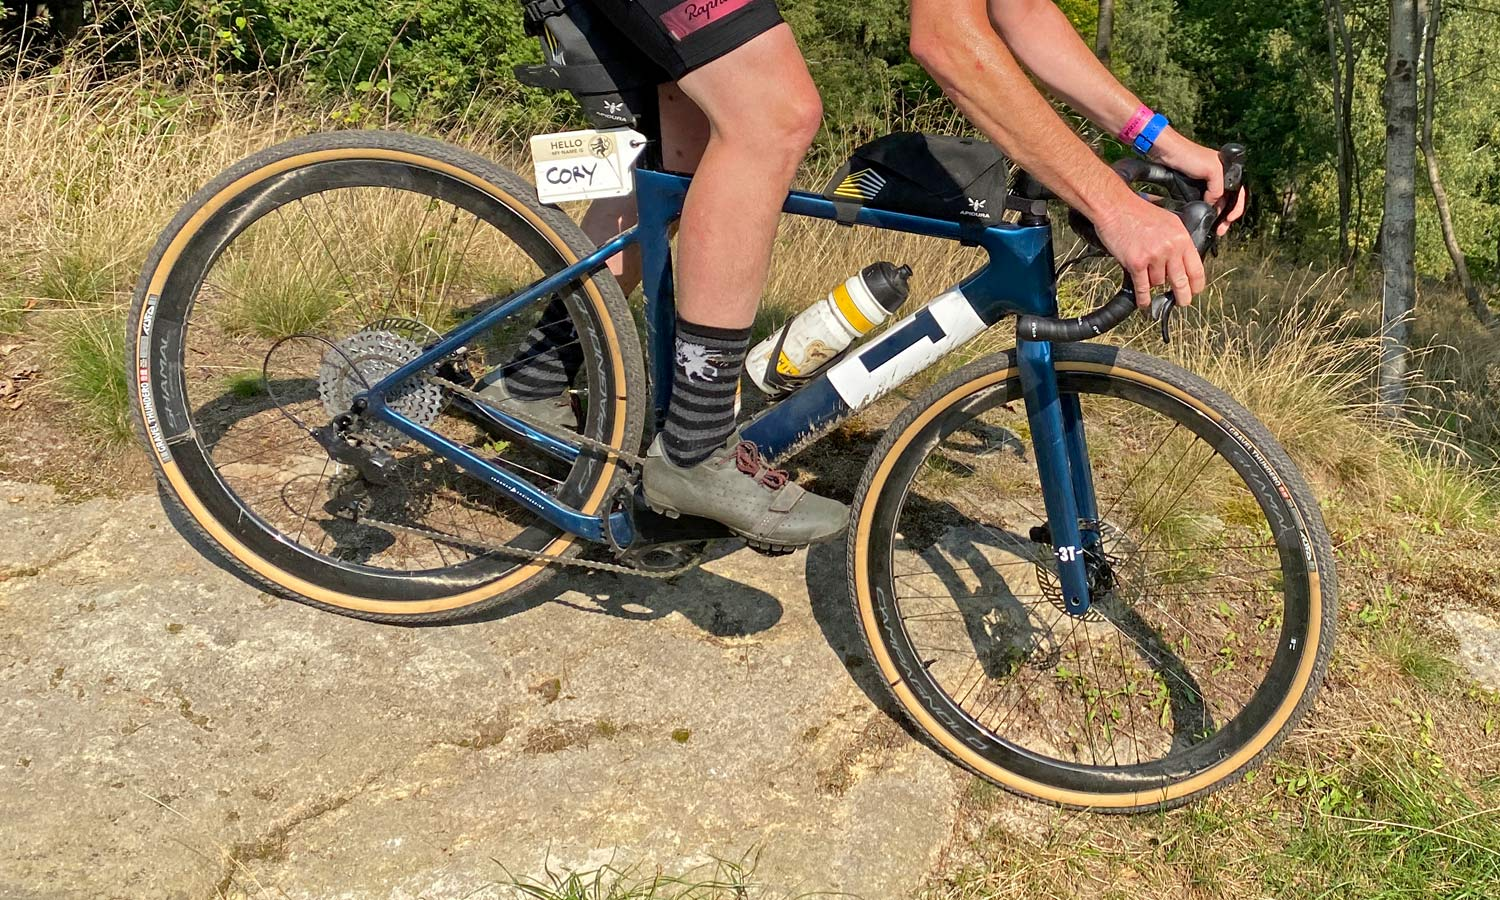 Tufo Gravel Thundero tubeless gravel bike tires, affordable durable mixed surface grip review, riding off-road